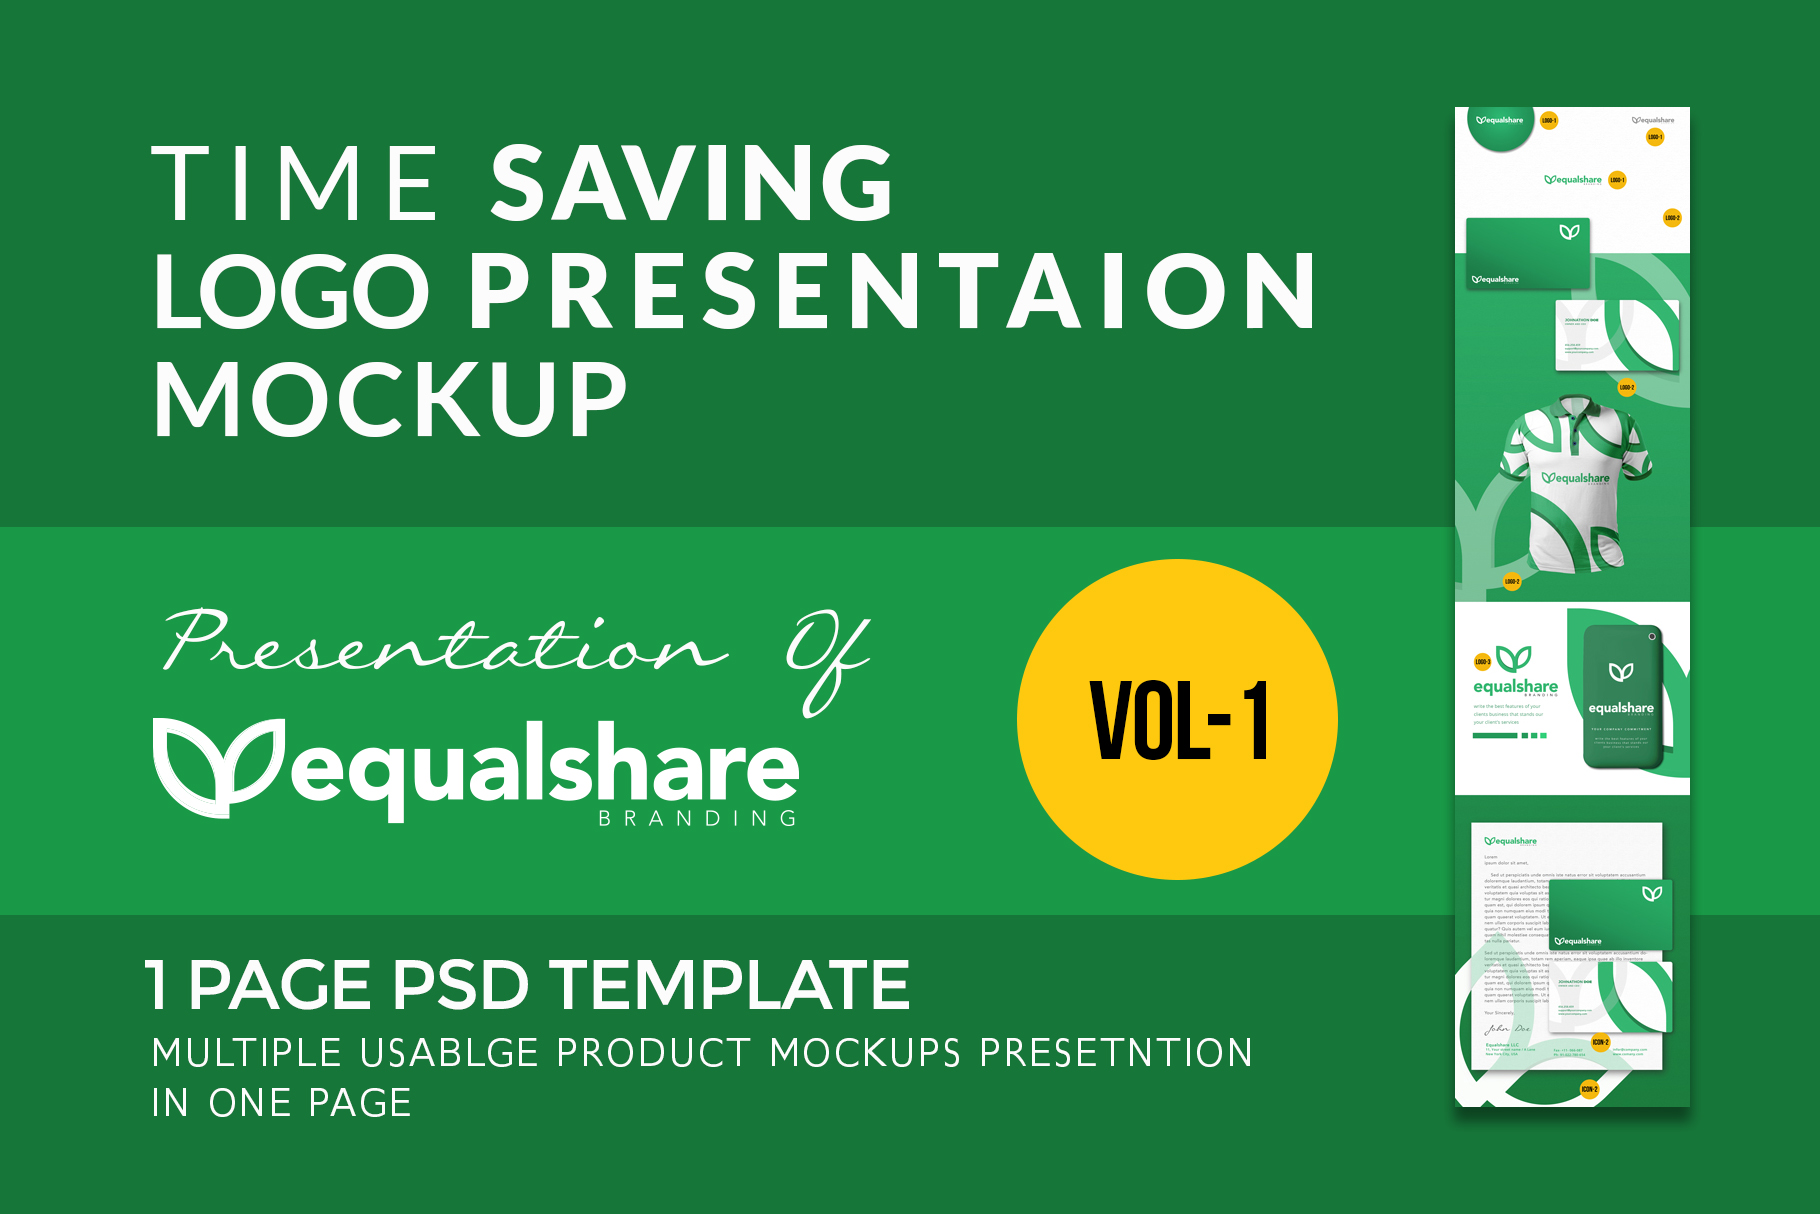 one page logo presentation template in just 3 minutes